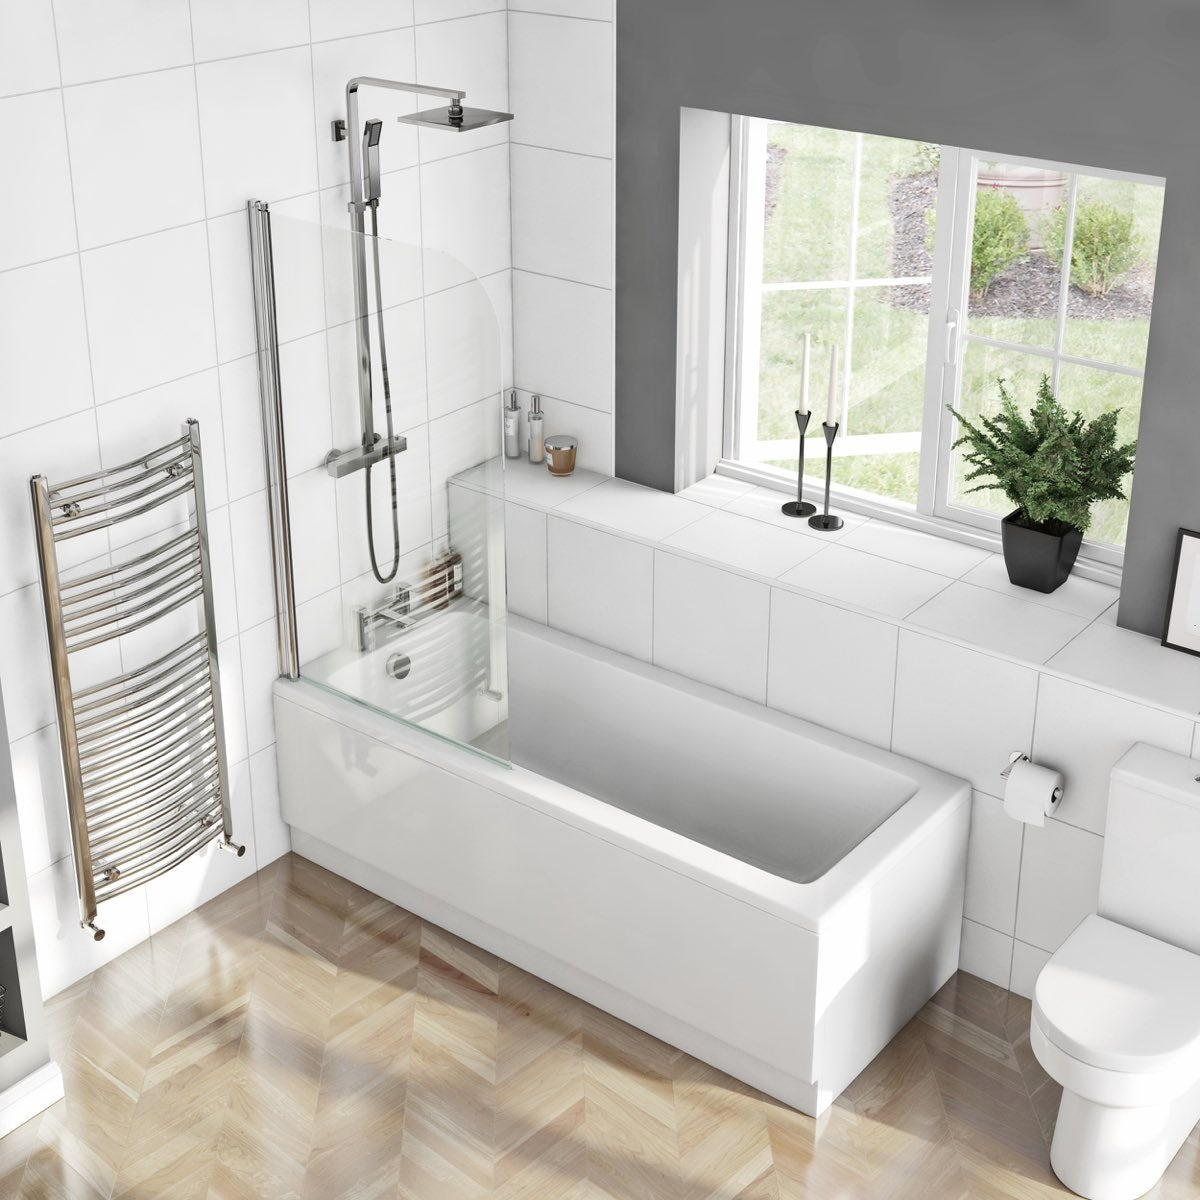 kensington 1700 x 750 shower bath with curved single marshall straight shower bath 1700 x 750mm with 6mm curved